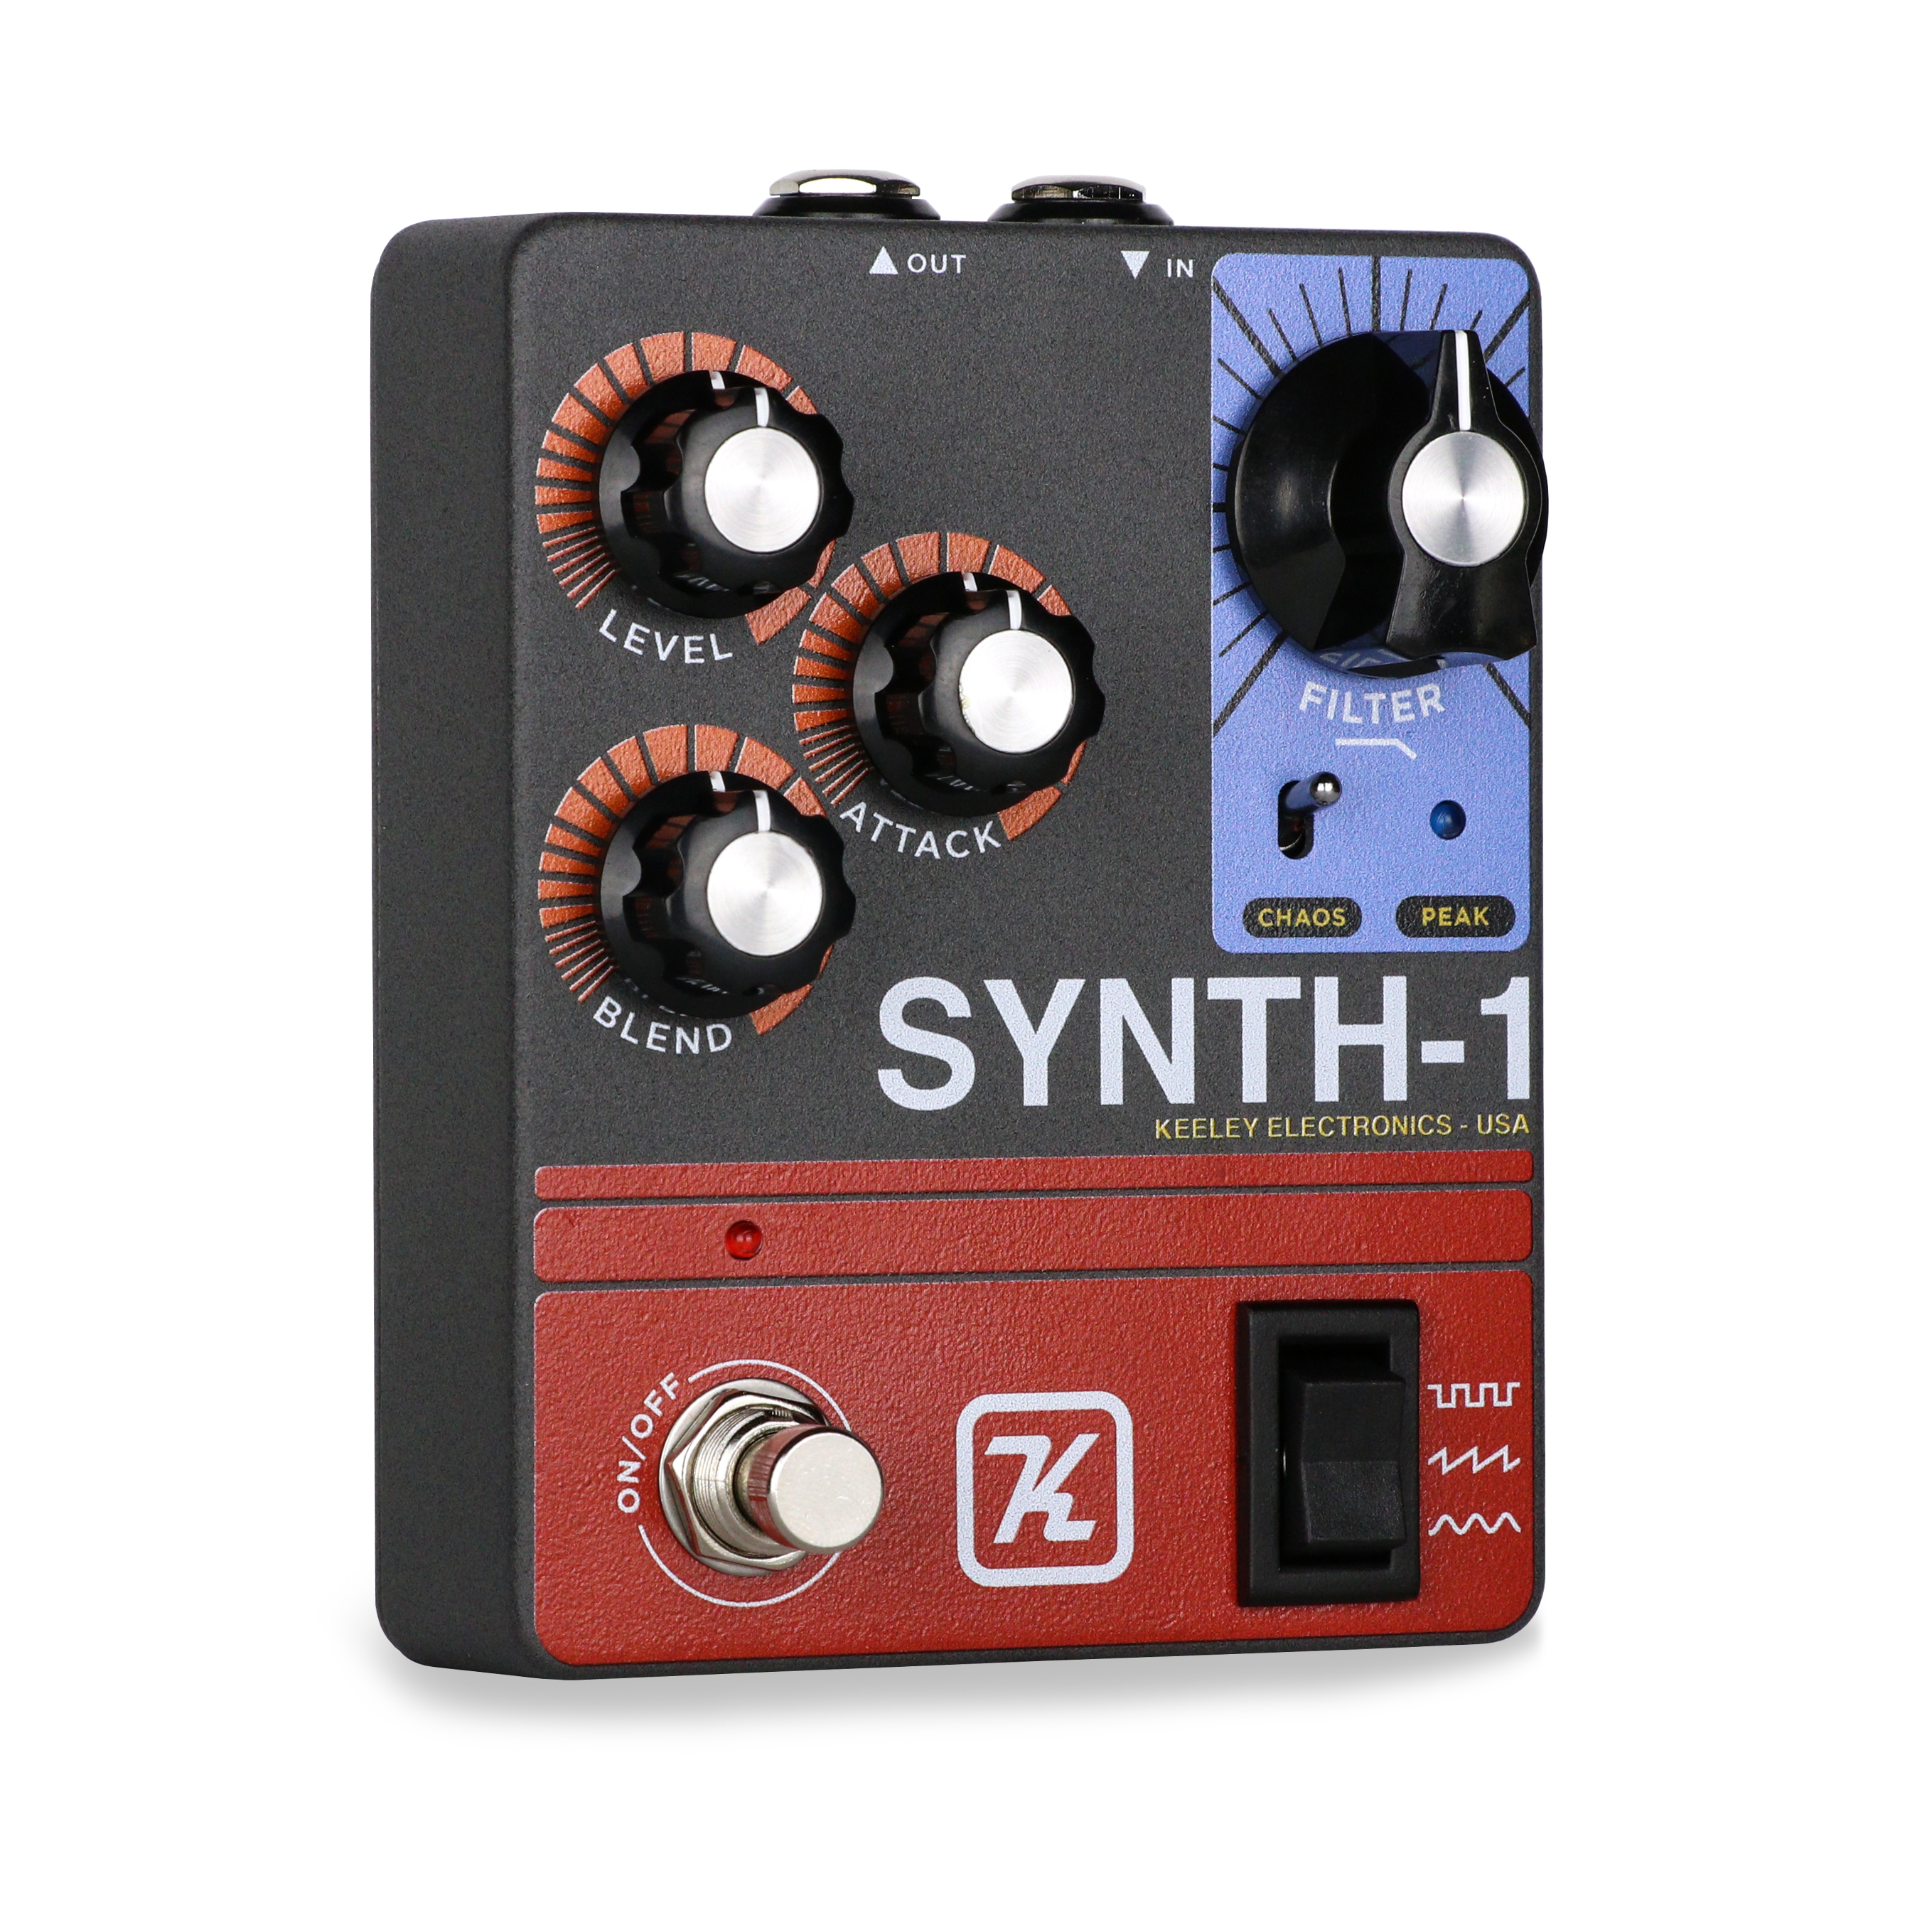 Guitar Synth Pedal >> Synth 1 Reverse Attack Fuzz Wave Generator Robert Keeley